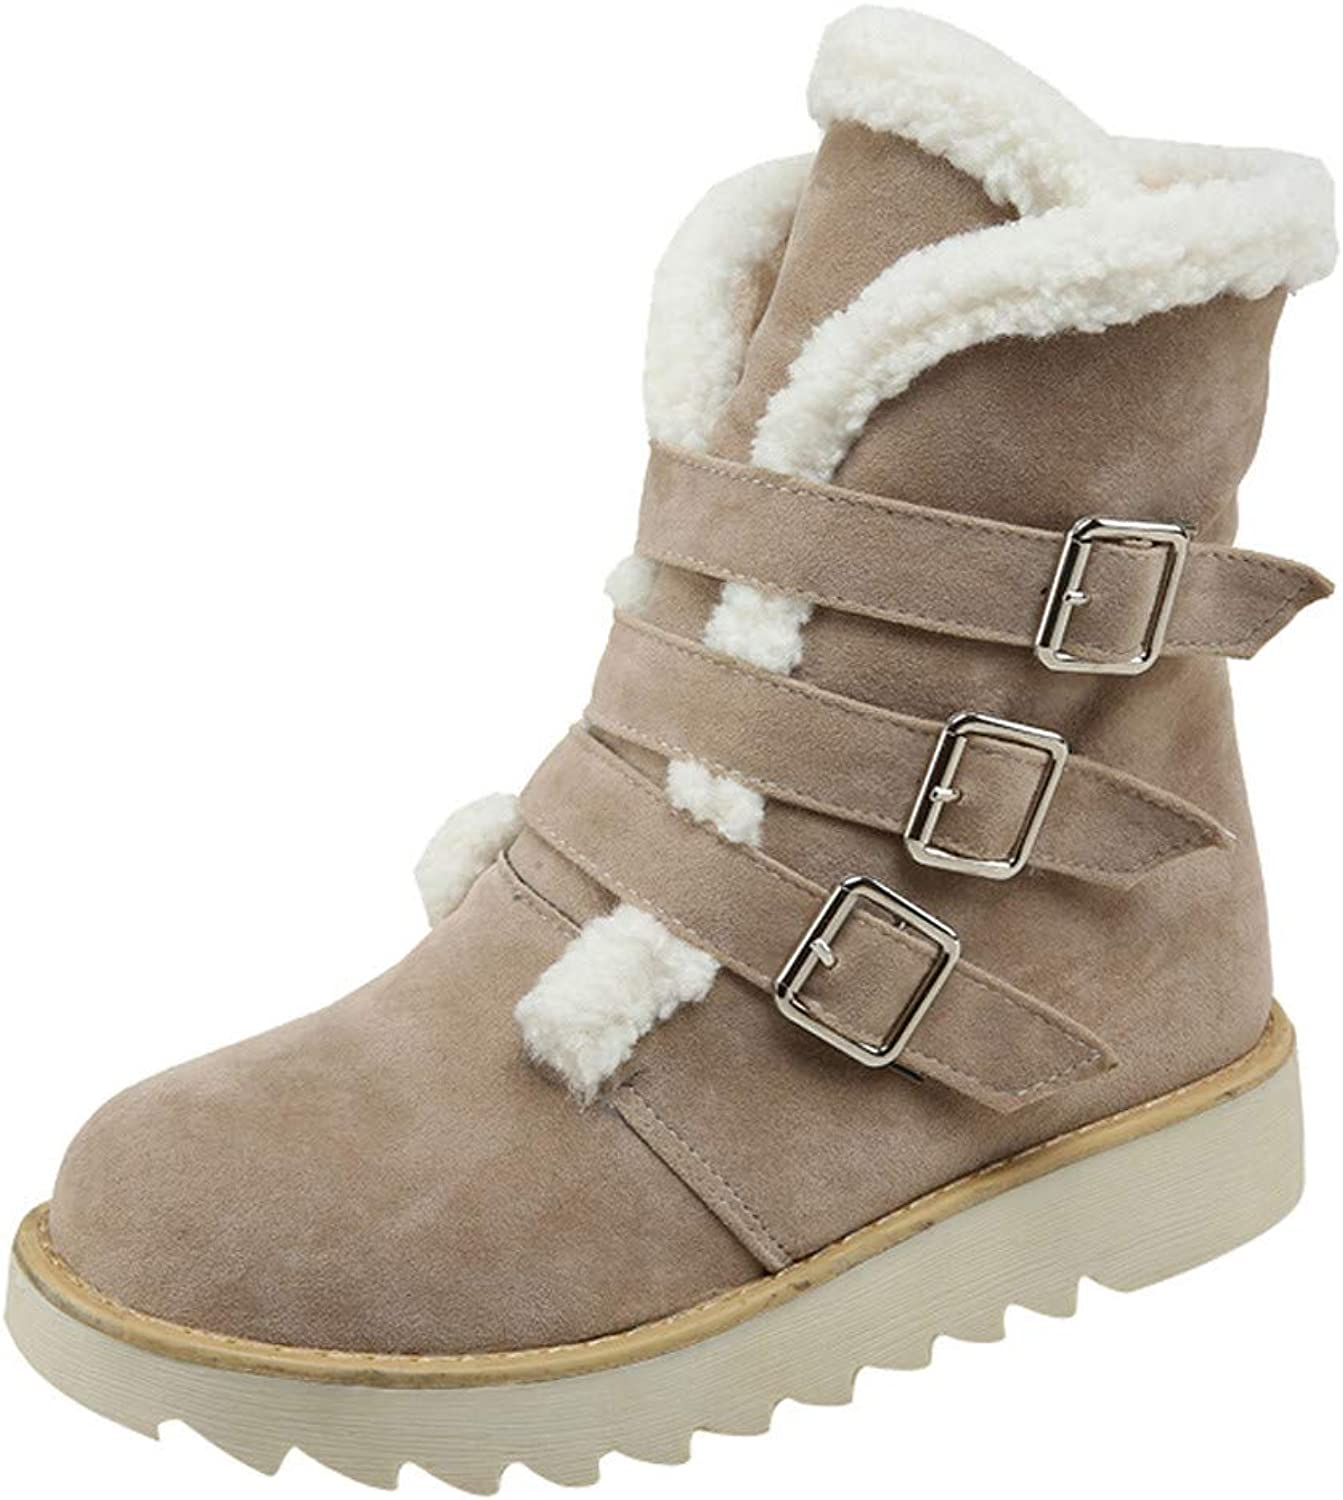 JESPER Women Suede Woolen Lining Snow Boots Round Toe Buckle Strap shoes Warm Ankle Boots